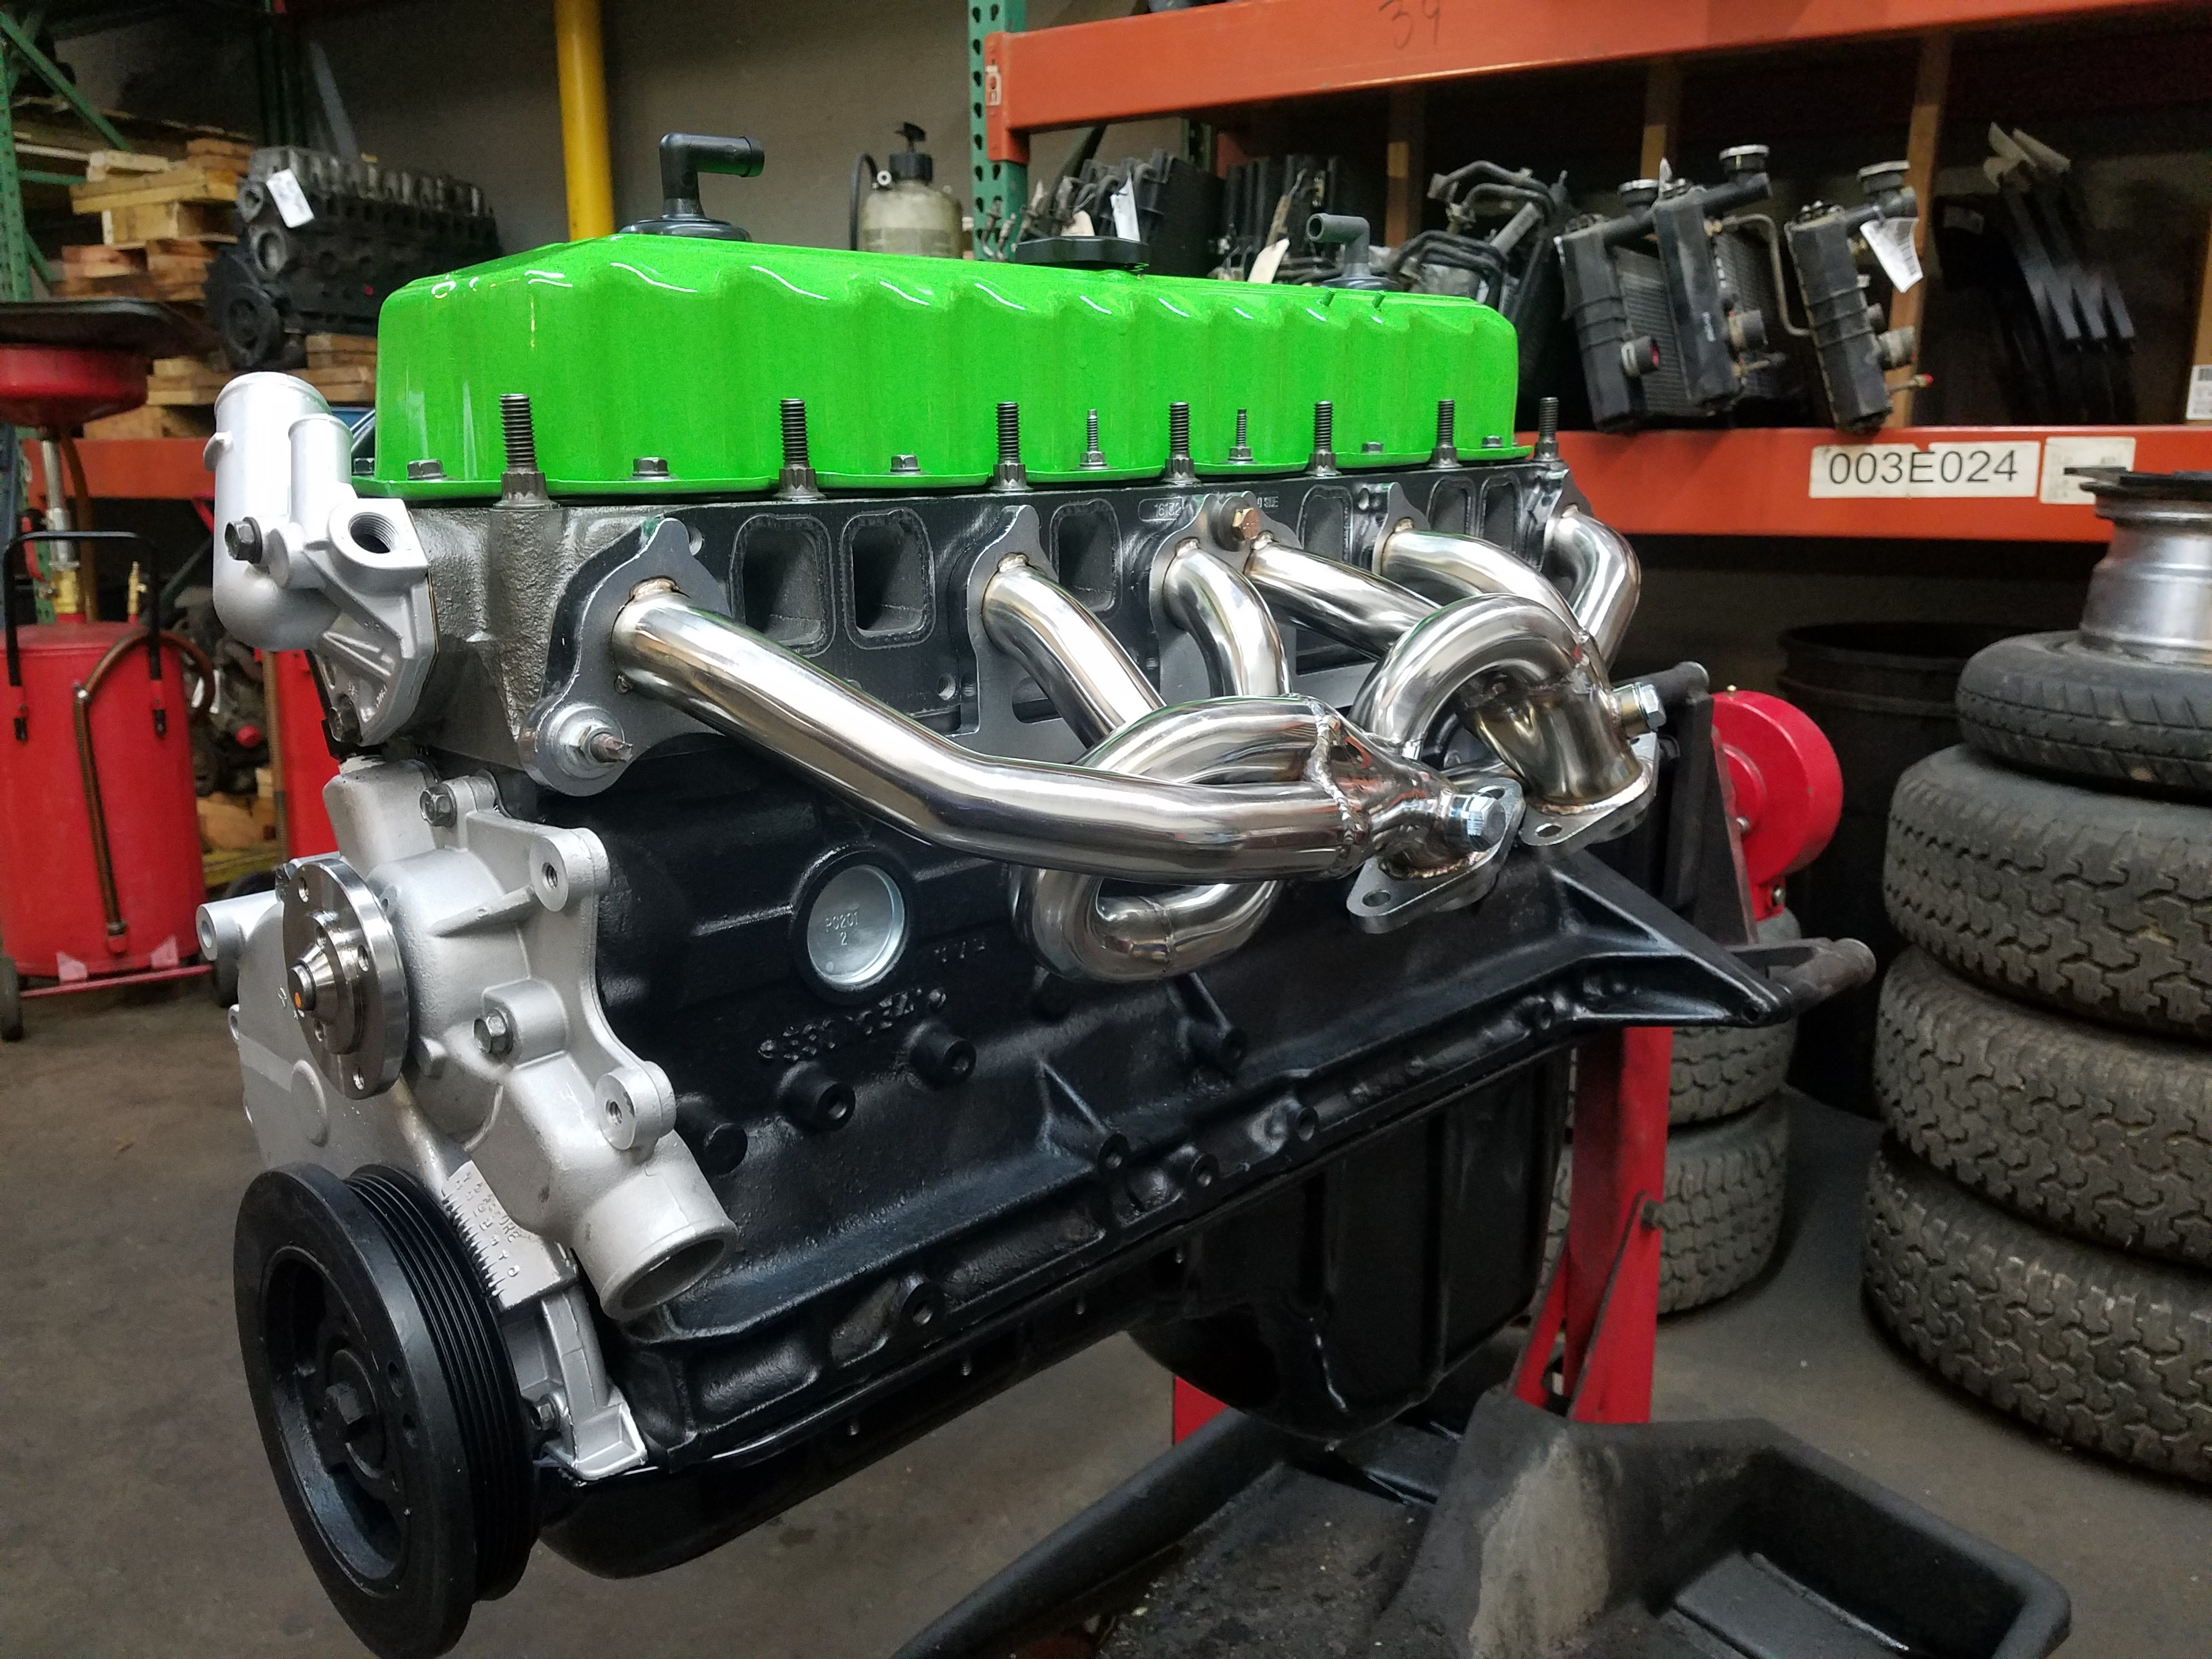 Timbukthree 4wd And Automotive Jeep 4 0 Stroker Engine For Sale Engines